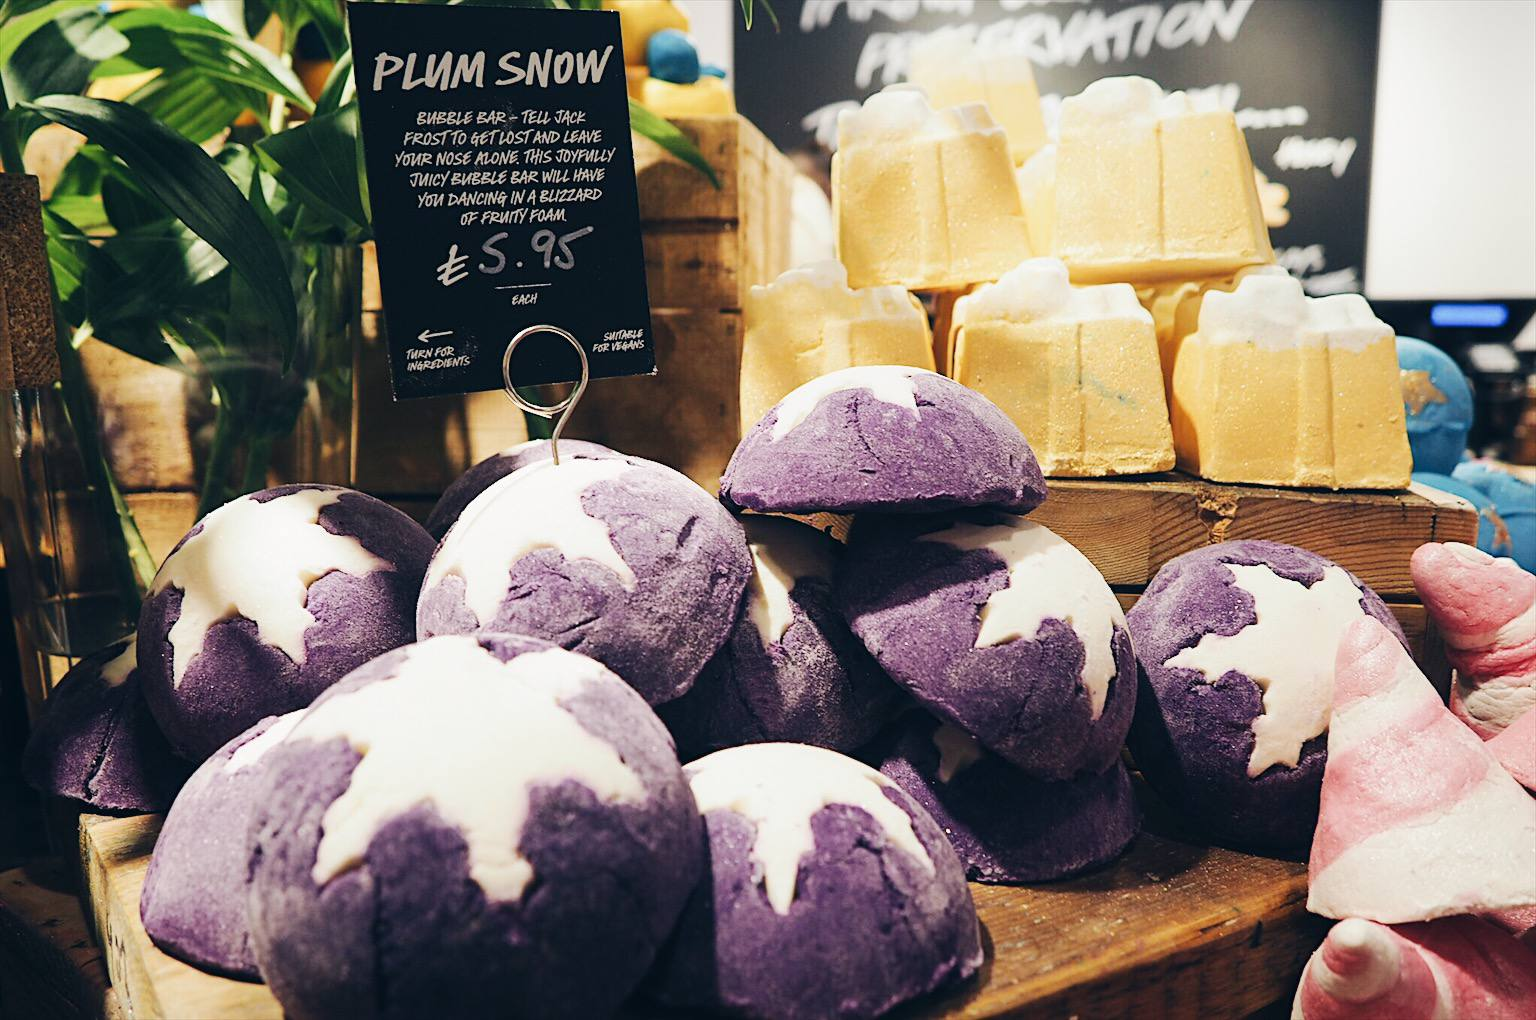 Plum Snow Bubble bar review Lush Christmas products